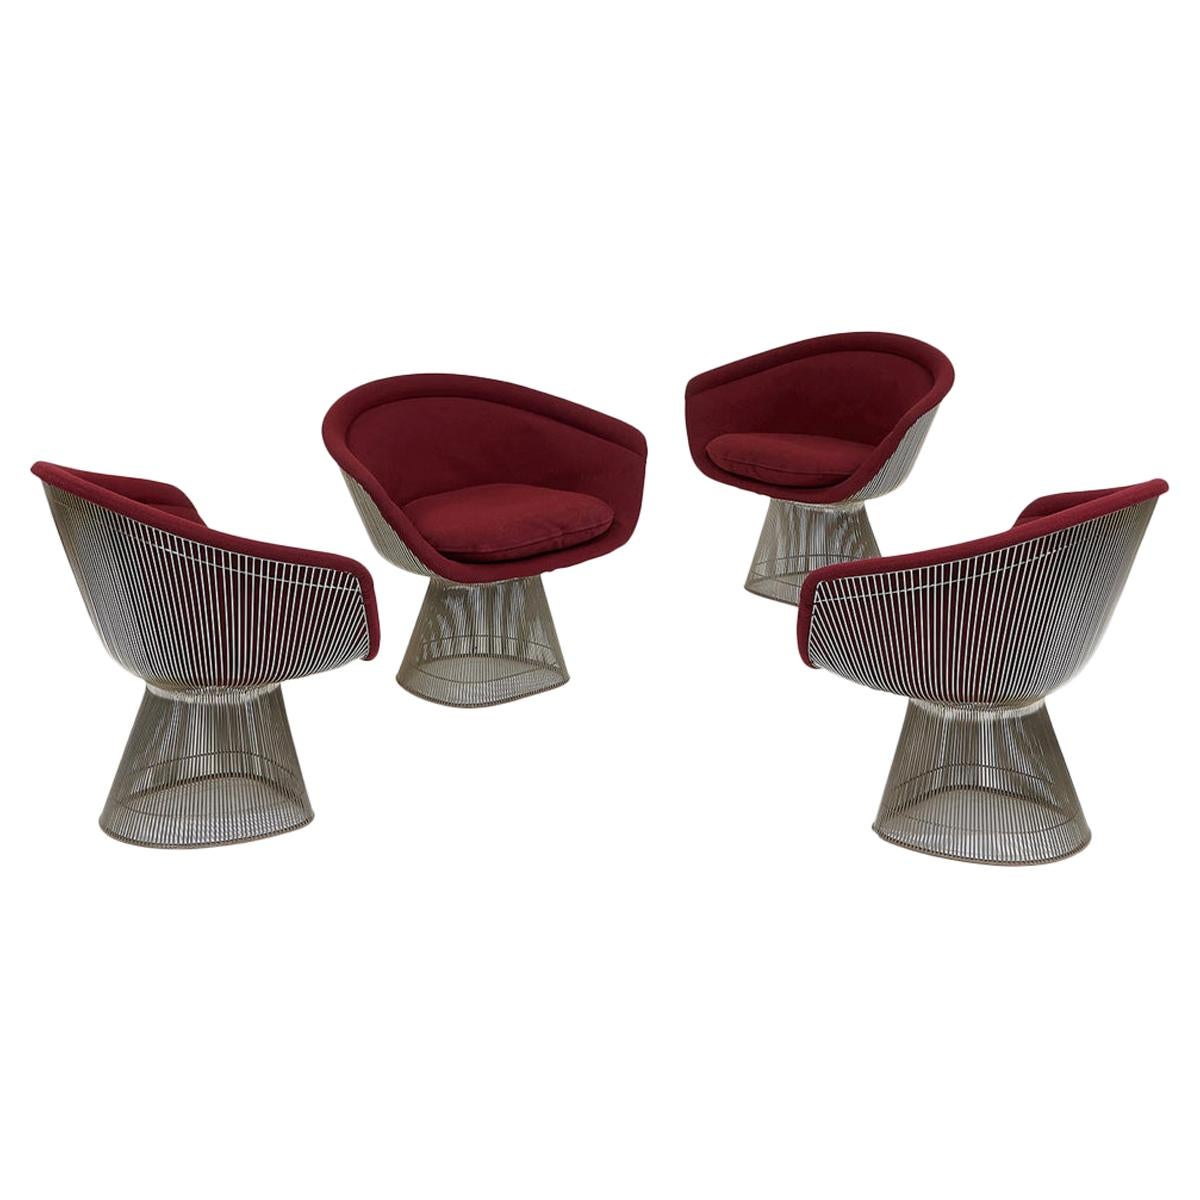 Set of Four Chairs by Warren Platner